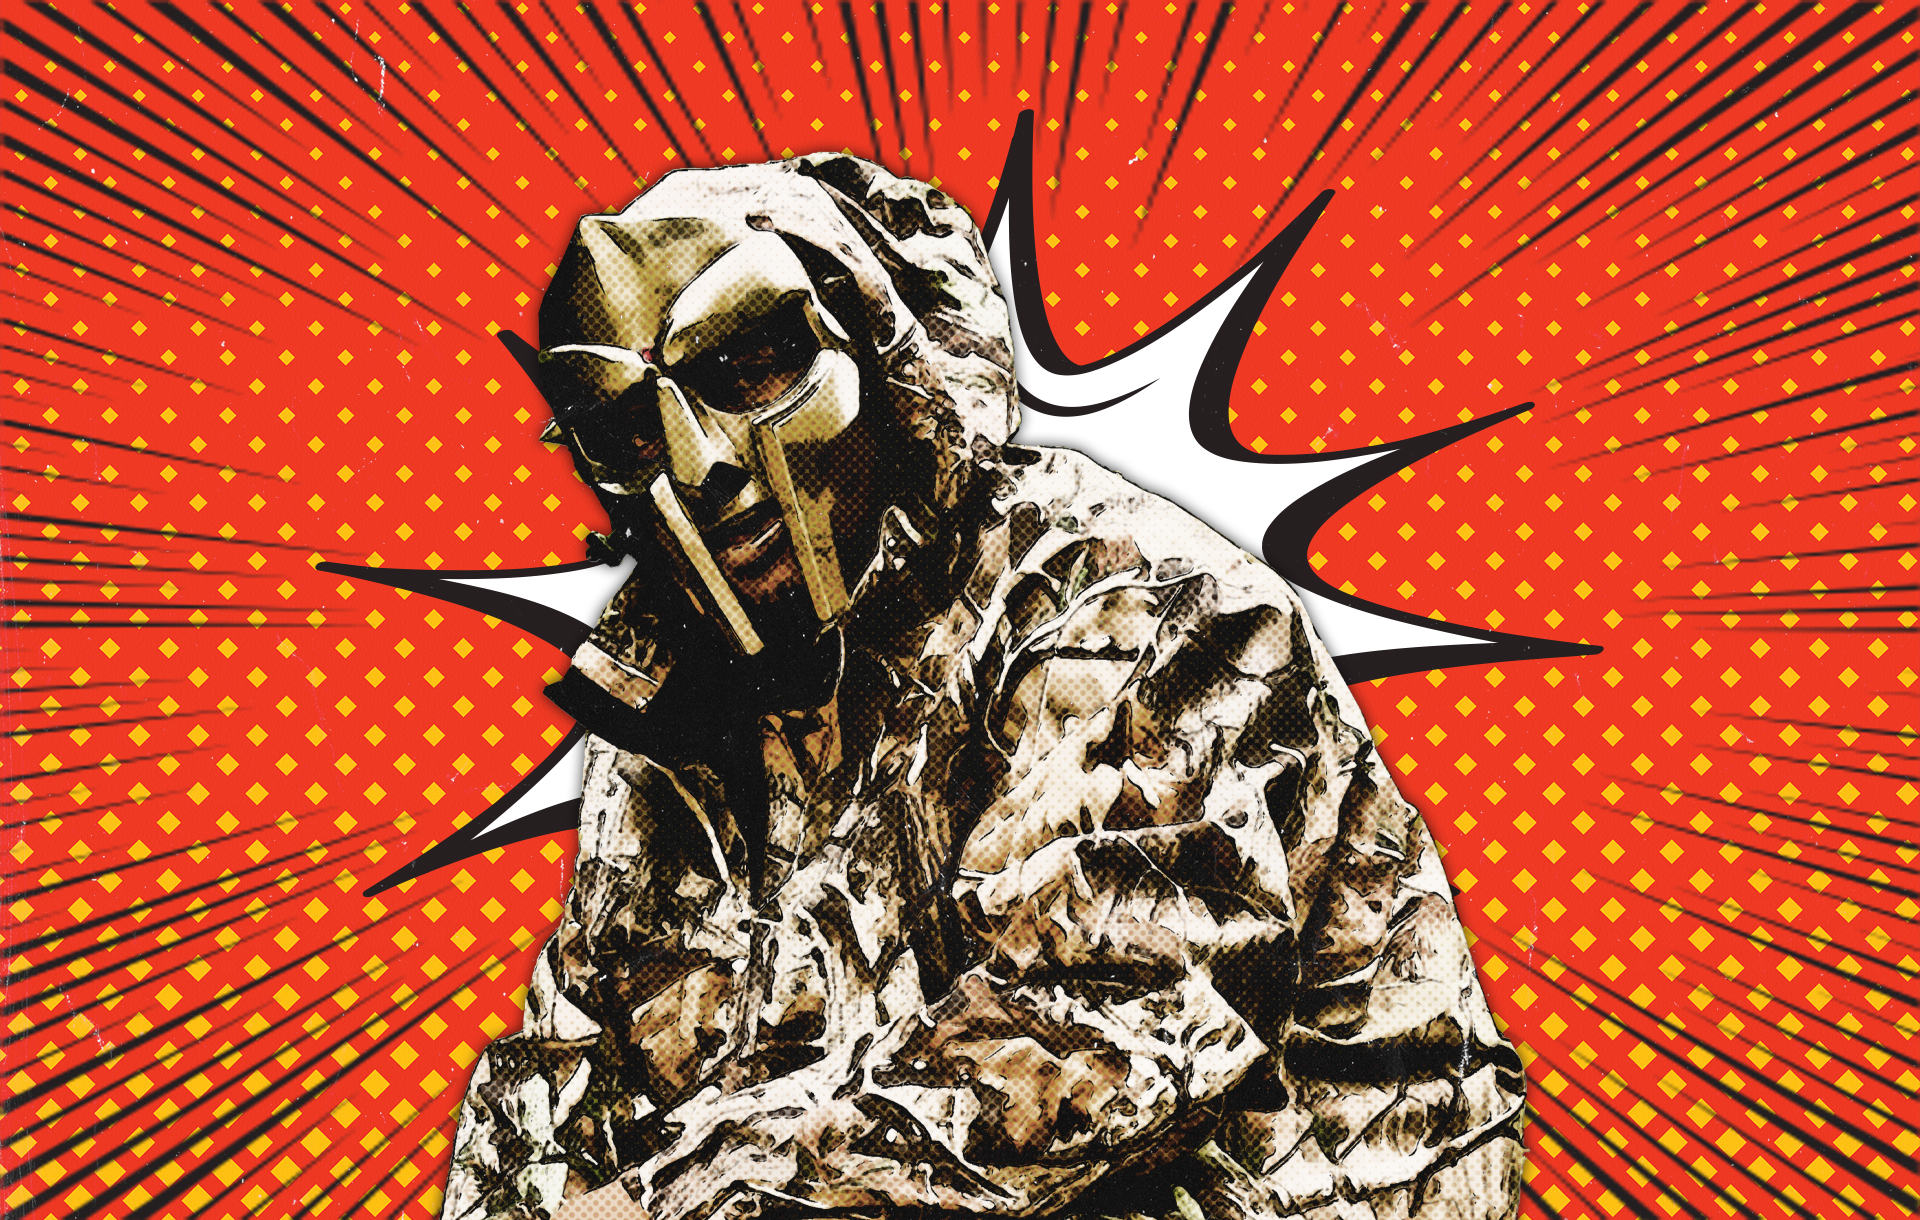 Long Live MF DOOM: A Tribute to the Life & Work of The Supervillain | Features | LIVING LIFE FEARLESS